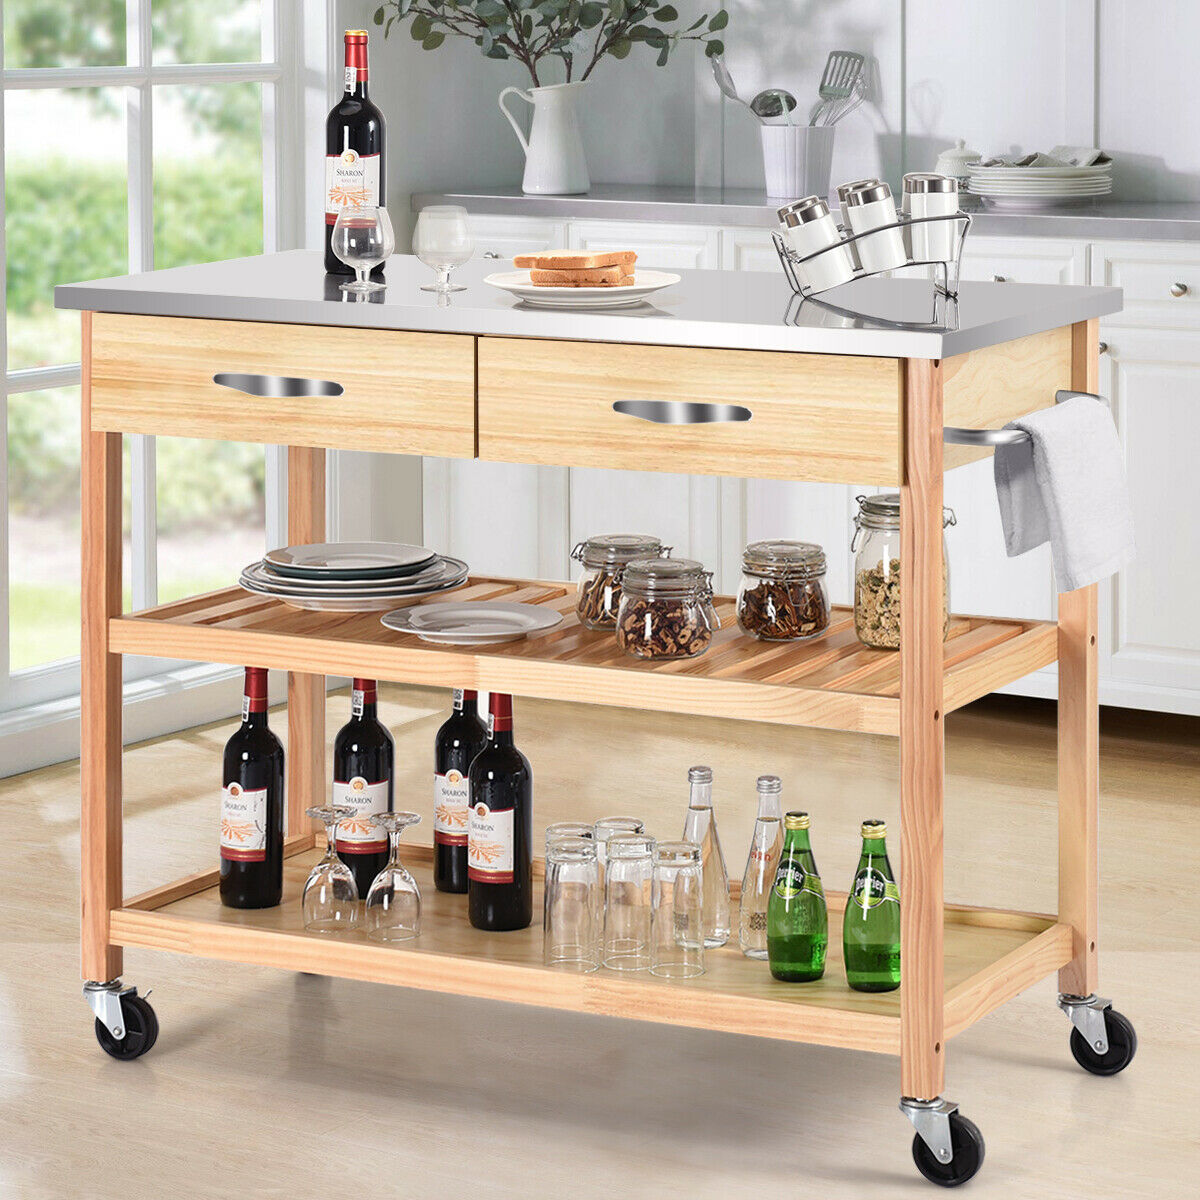 Rolling Portable Kitchen Island With Stainless Steel Countertop Storage Drawer Shelf Borkut